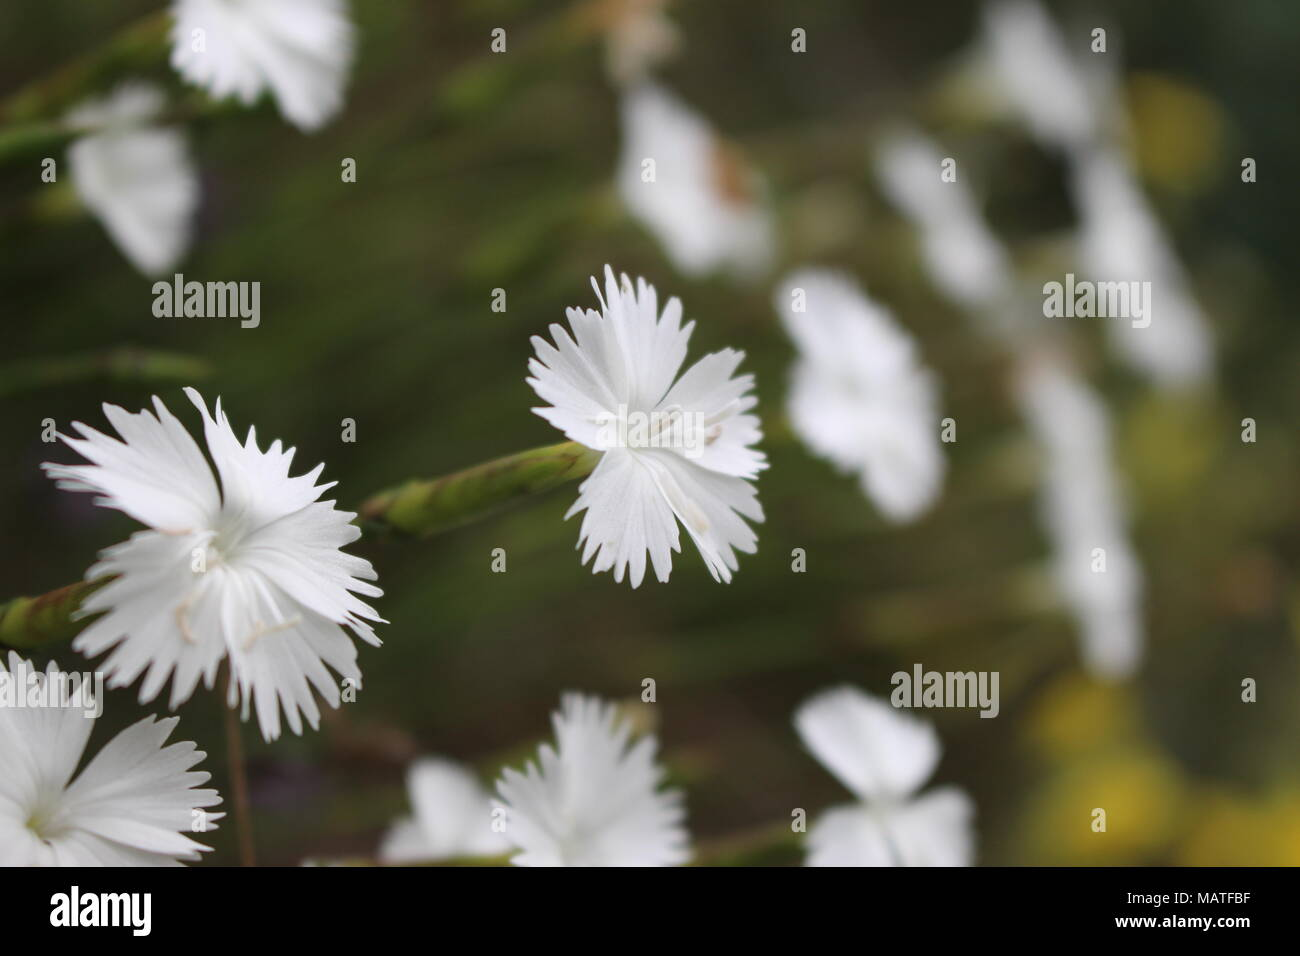 Small White Flowers Of Wild Carnation Species Stock Photo 178789171